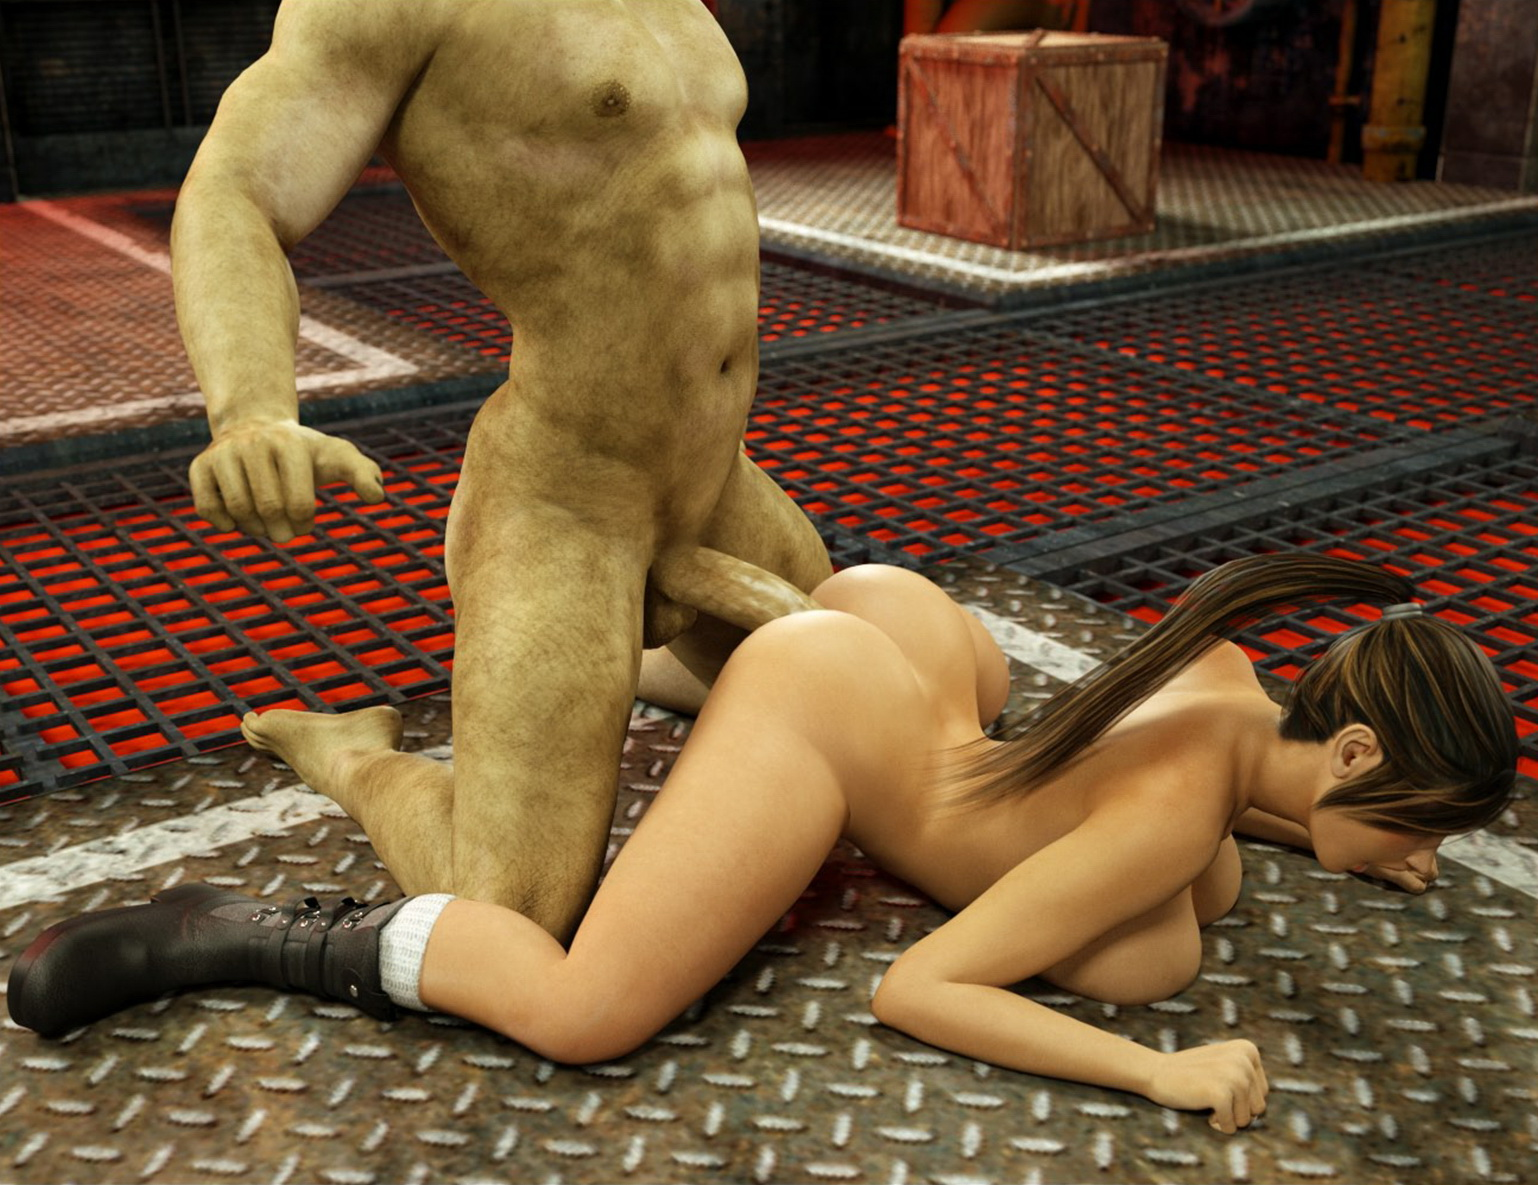 Sex cartoons 3d monster photo smut scenes